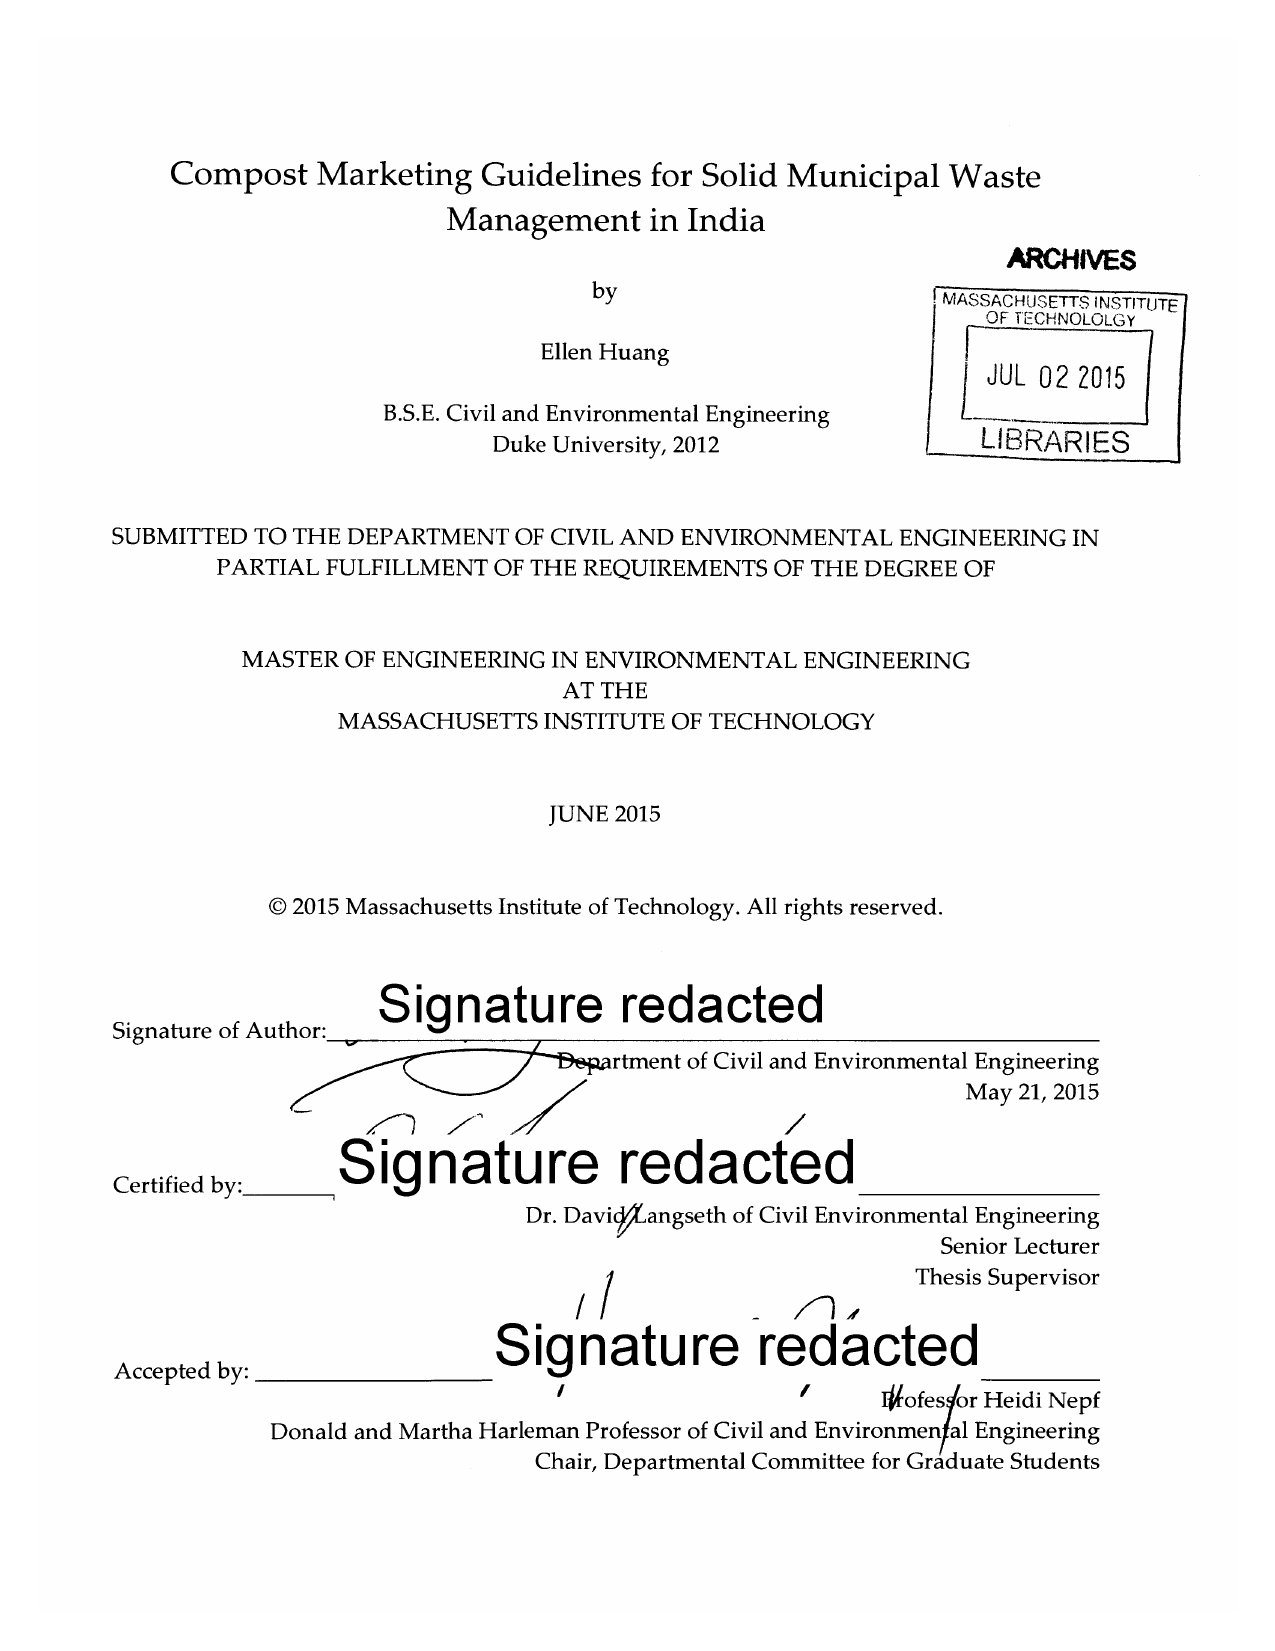 thesis on municipal solid waste management in india